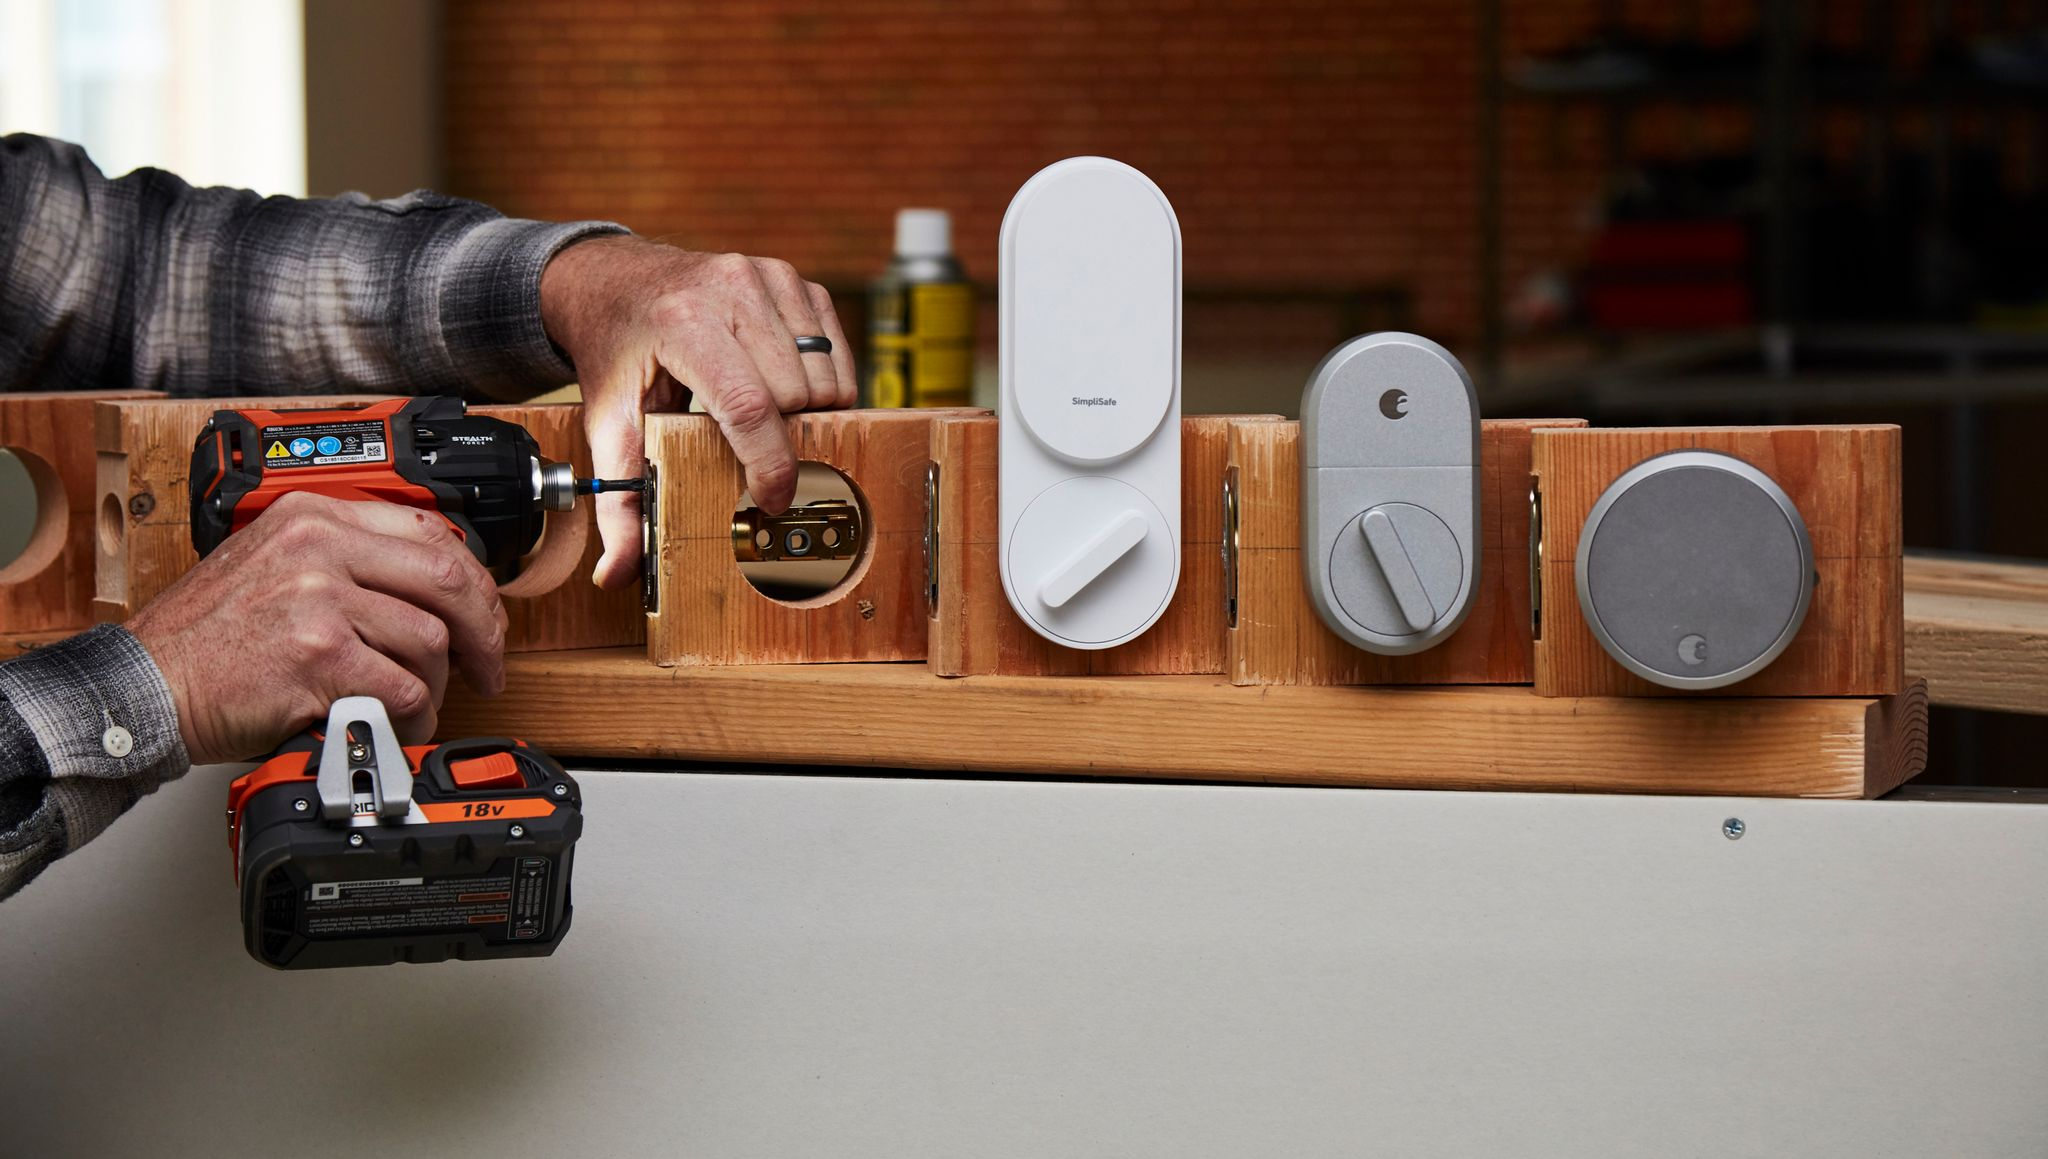 The Best Smart Locks for Your Home or Rental Property